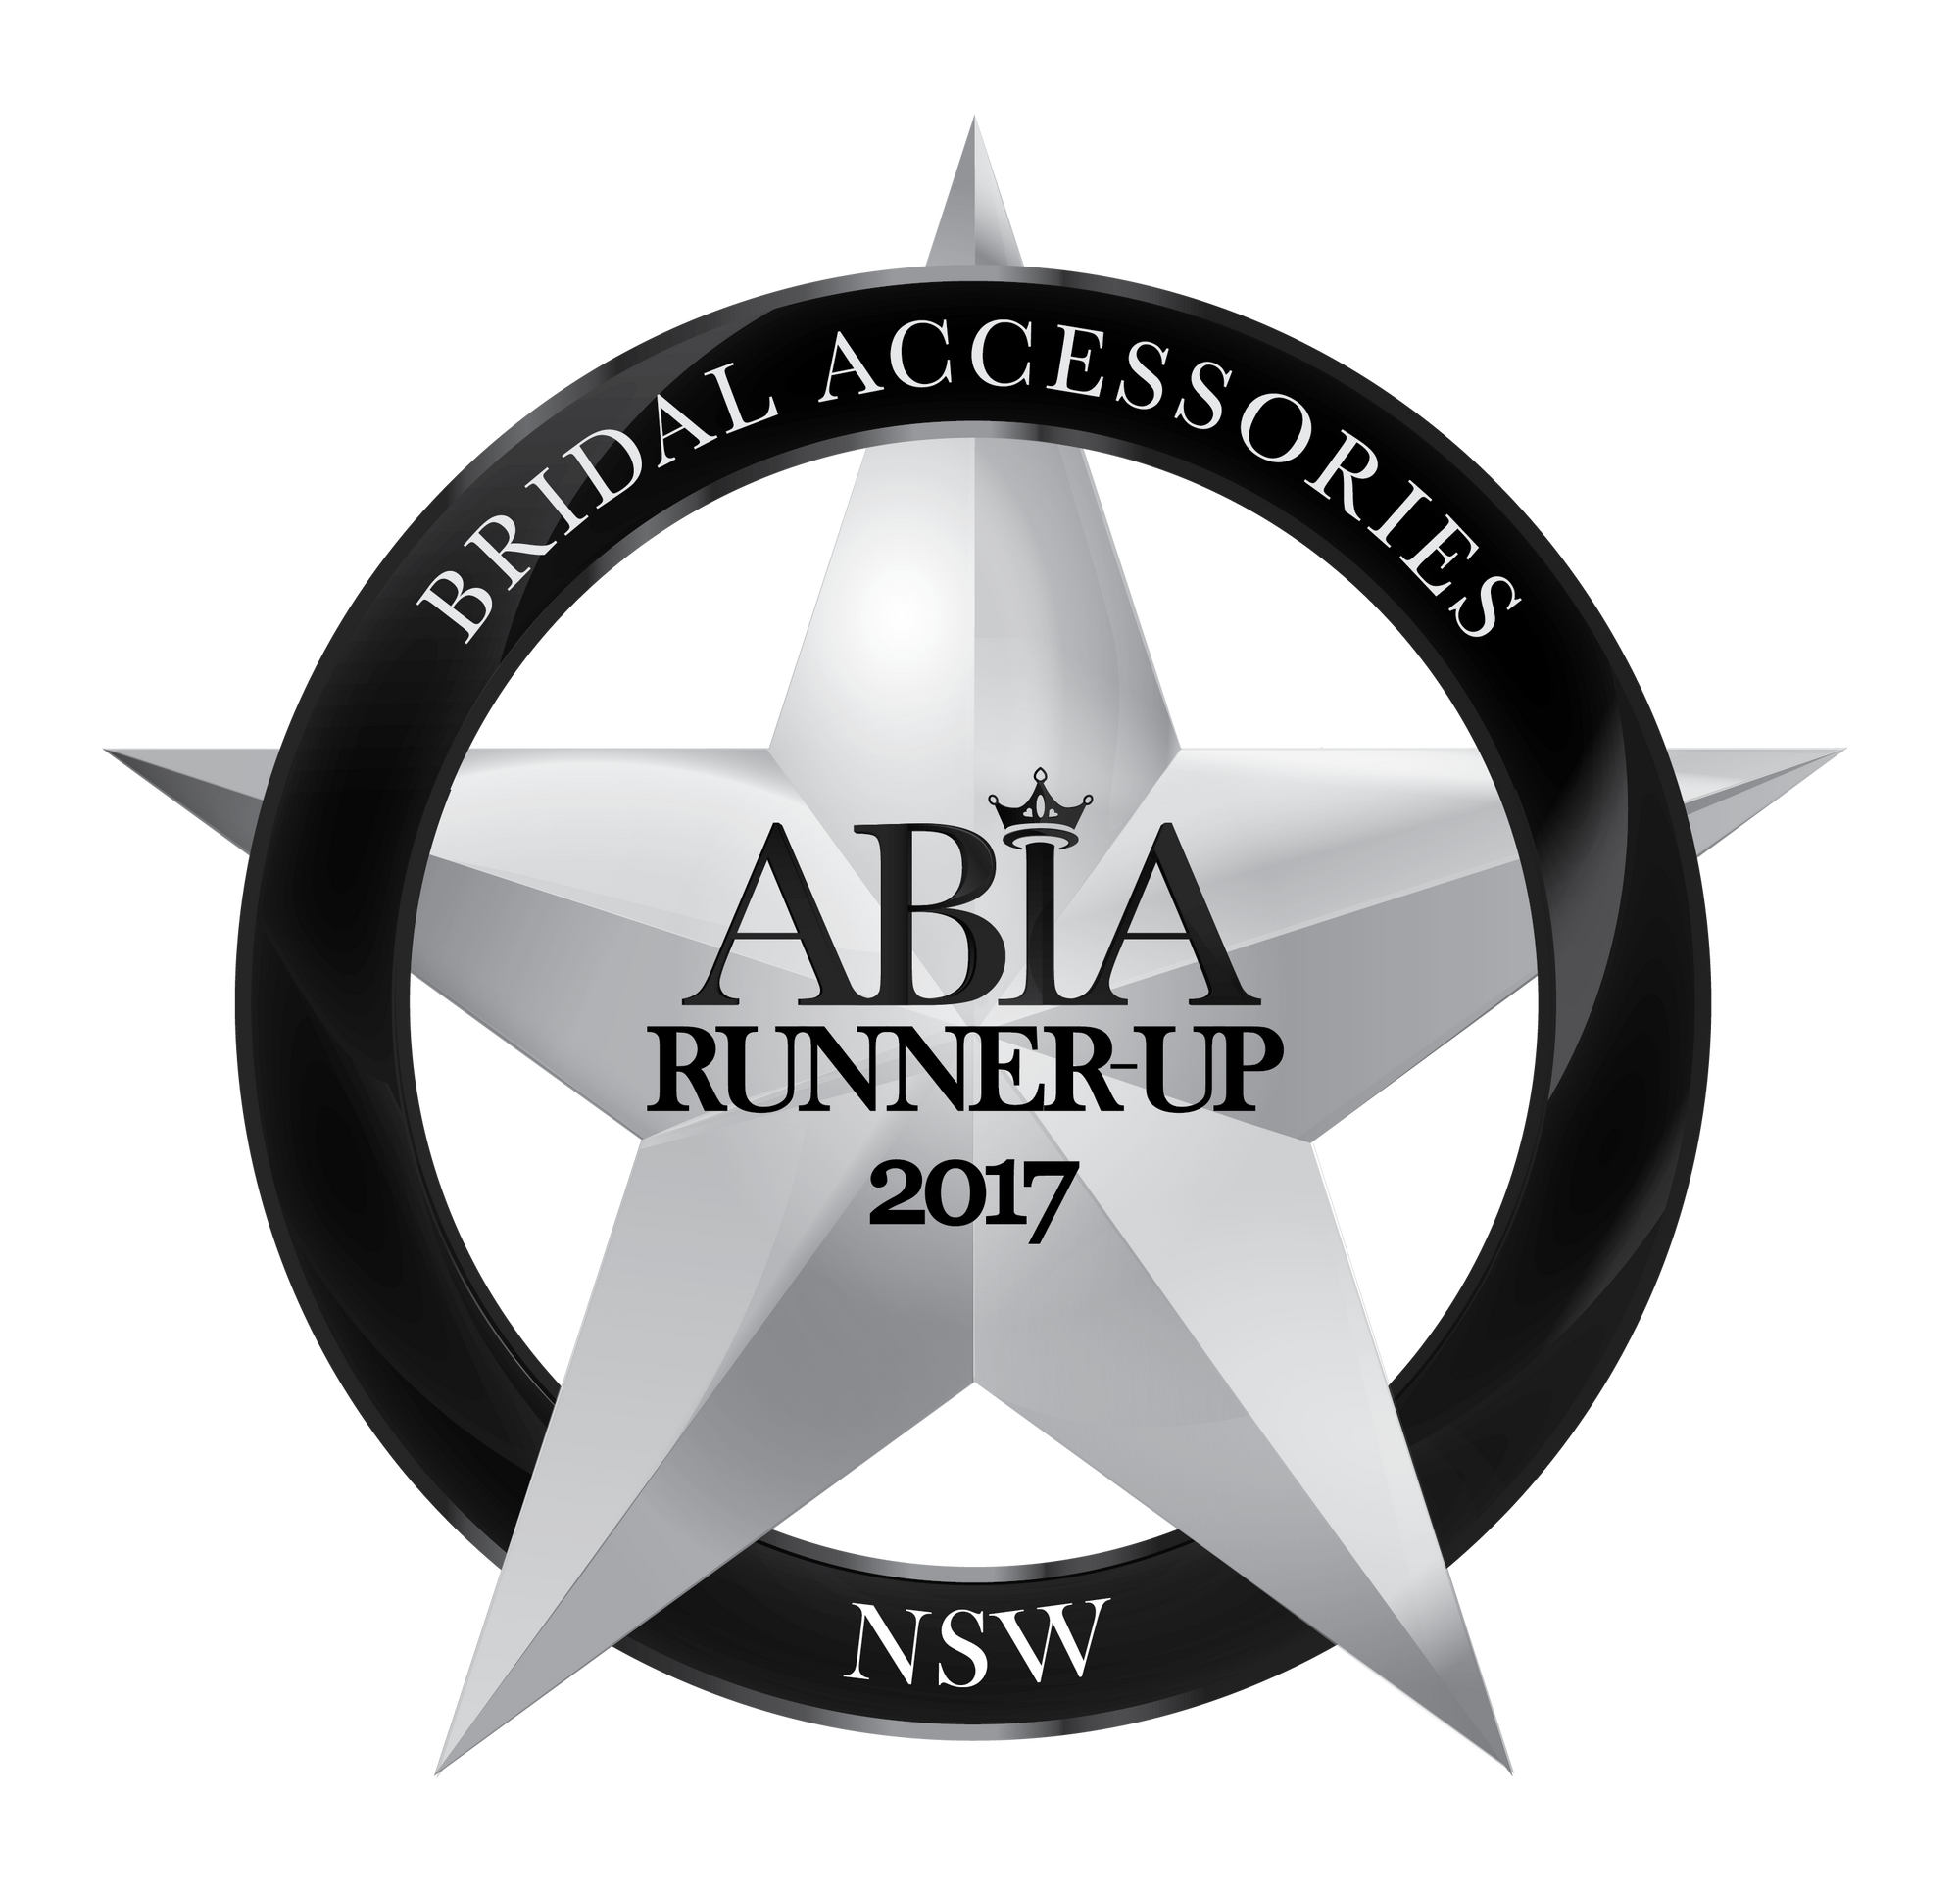 ABIA Runner up 2017 Bridal Accessories